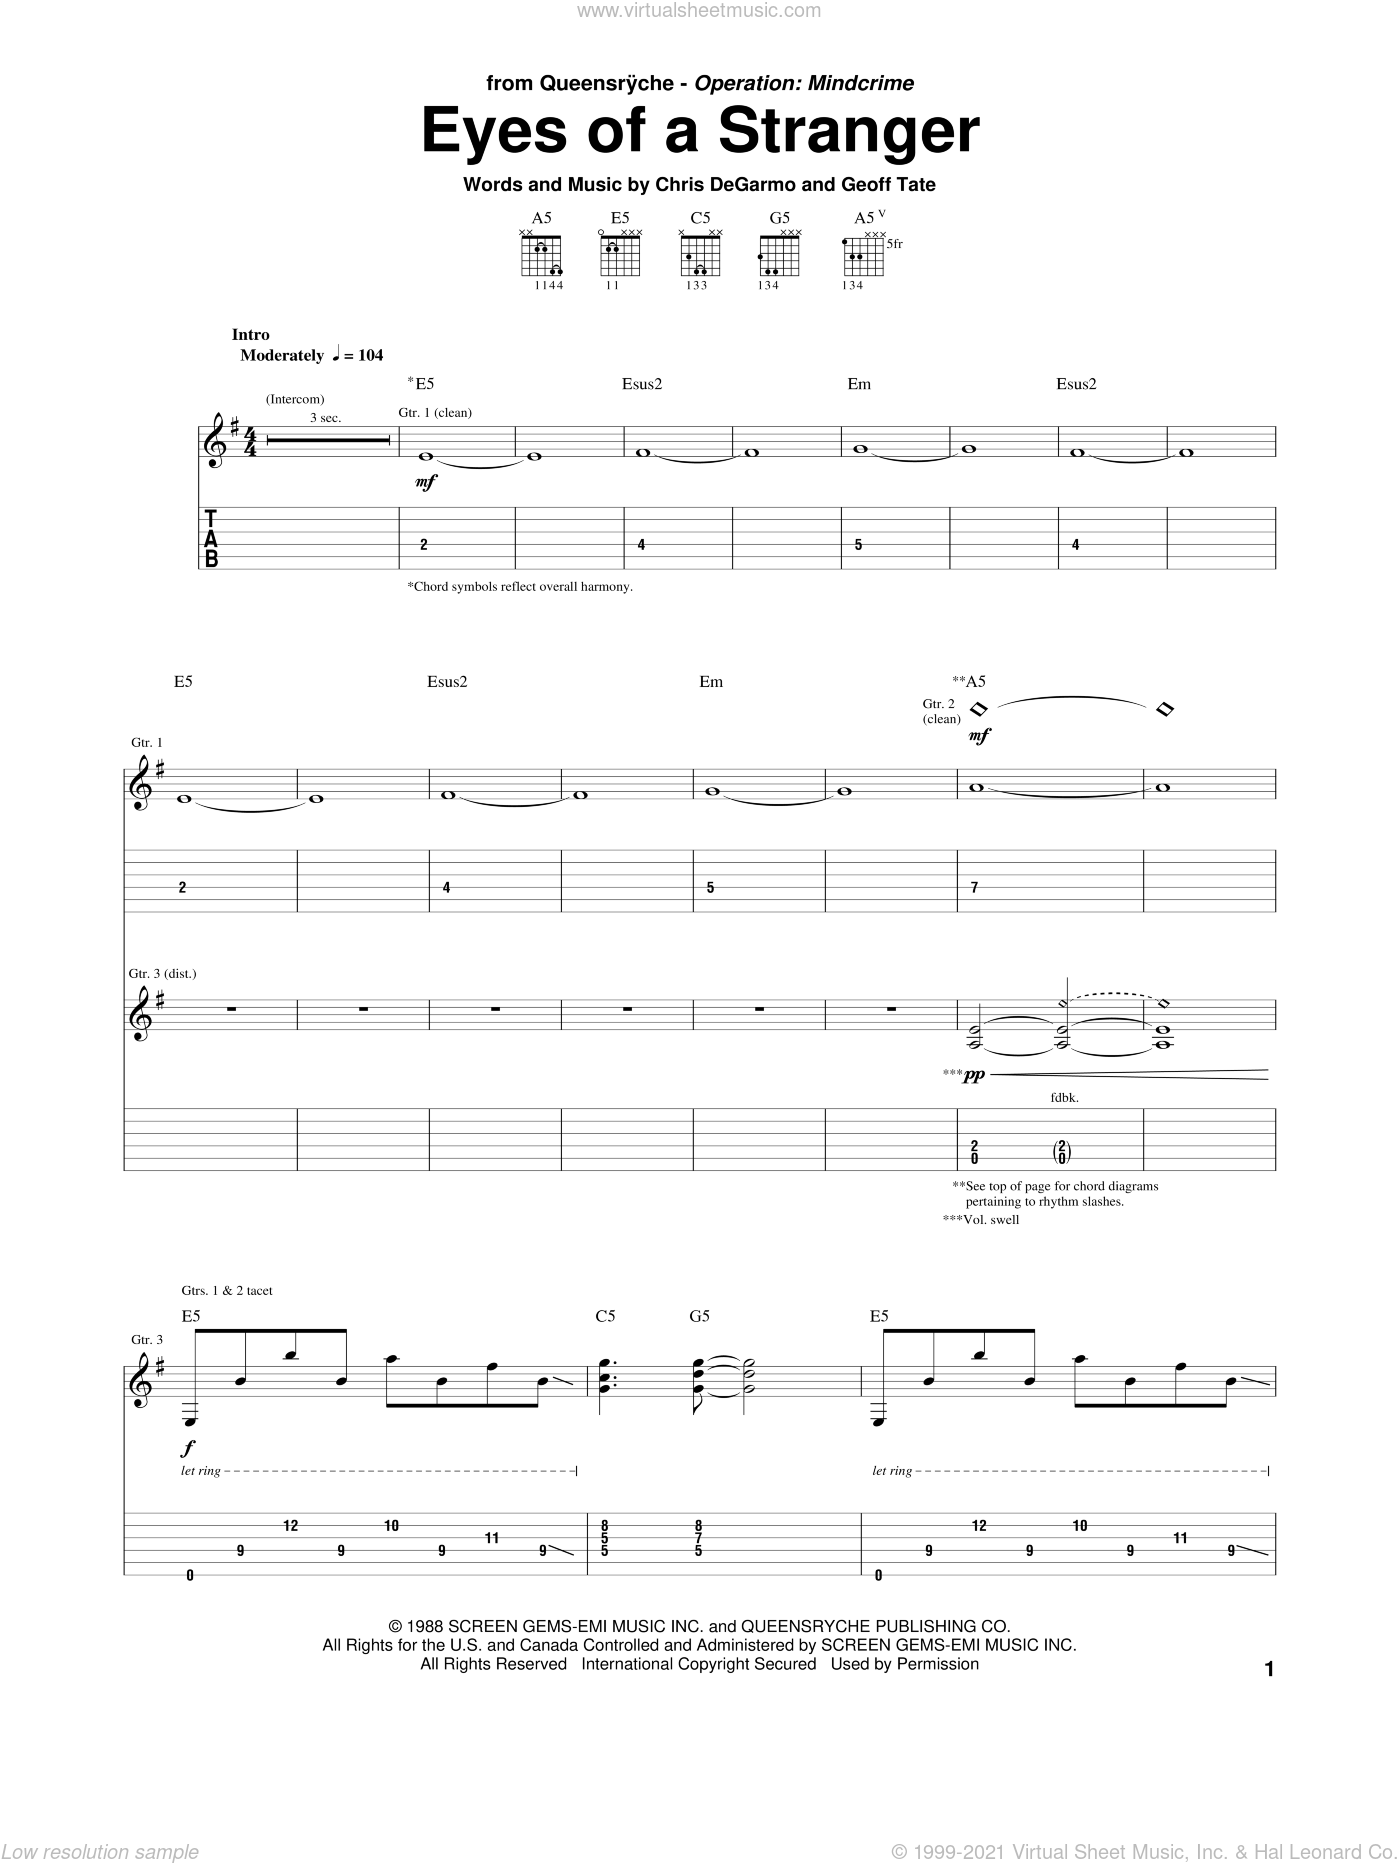 Eyes Of A Stranger sheet music for guitar (tablature) by Queensryche, Chris DeGarmo and Geoff Tate, intermediate. Score Image Preview.